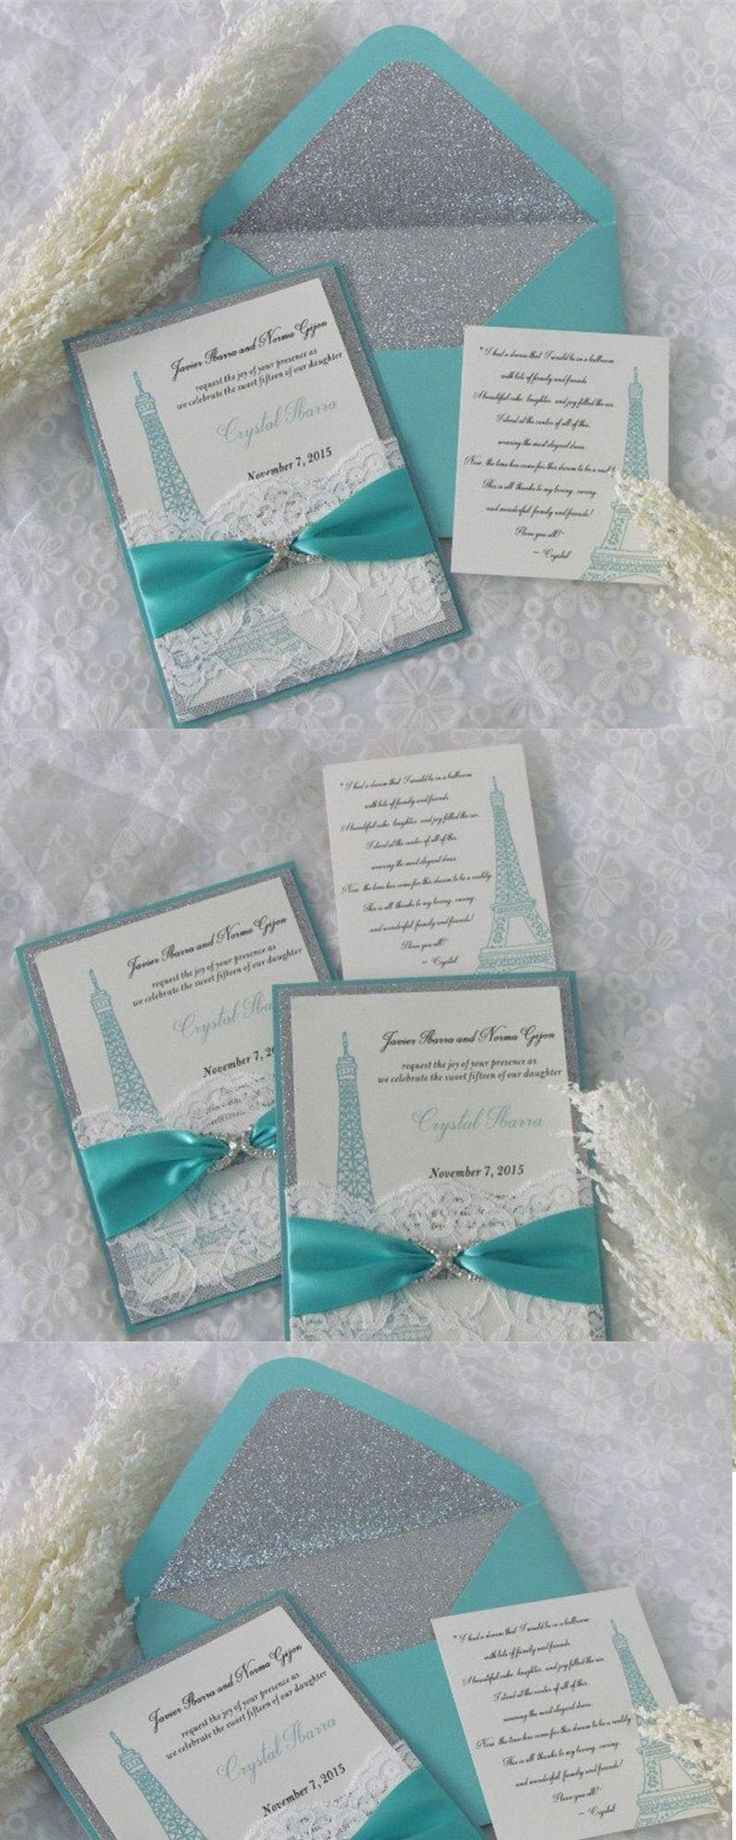 tiffany wedding invitations tiffany blue wedding invitations Tiffany Blue Glitter Invitations Sliver Glitter Invitations